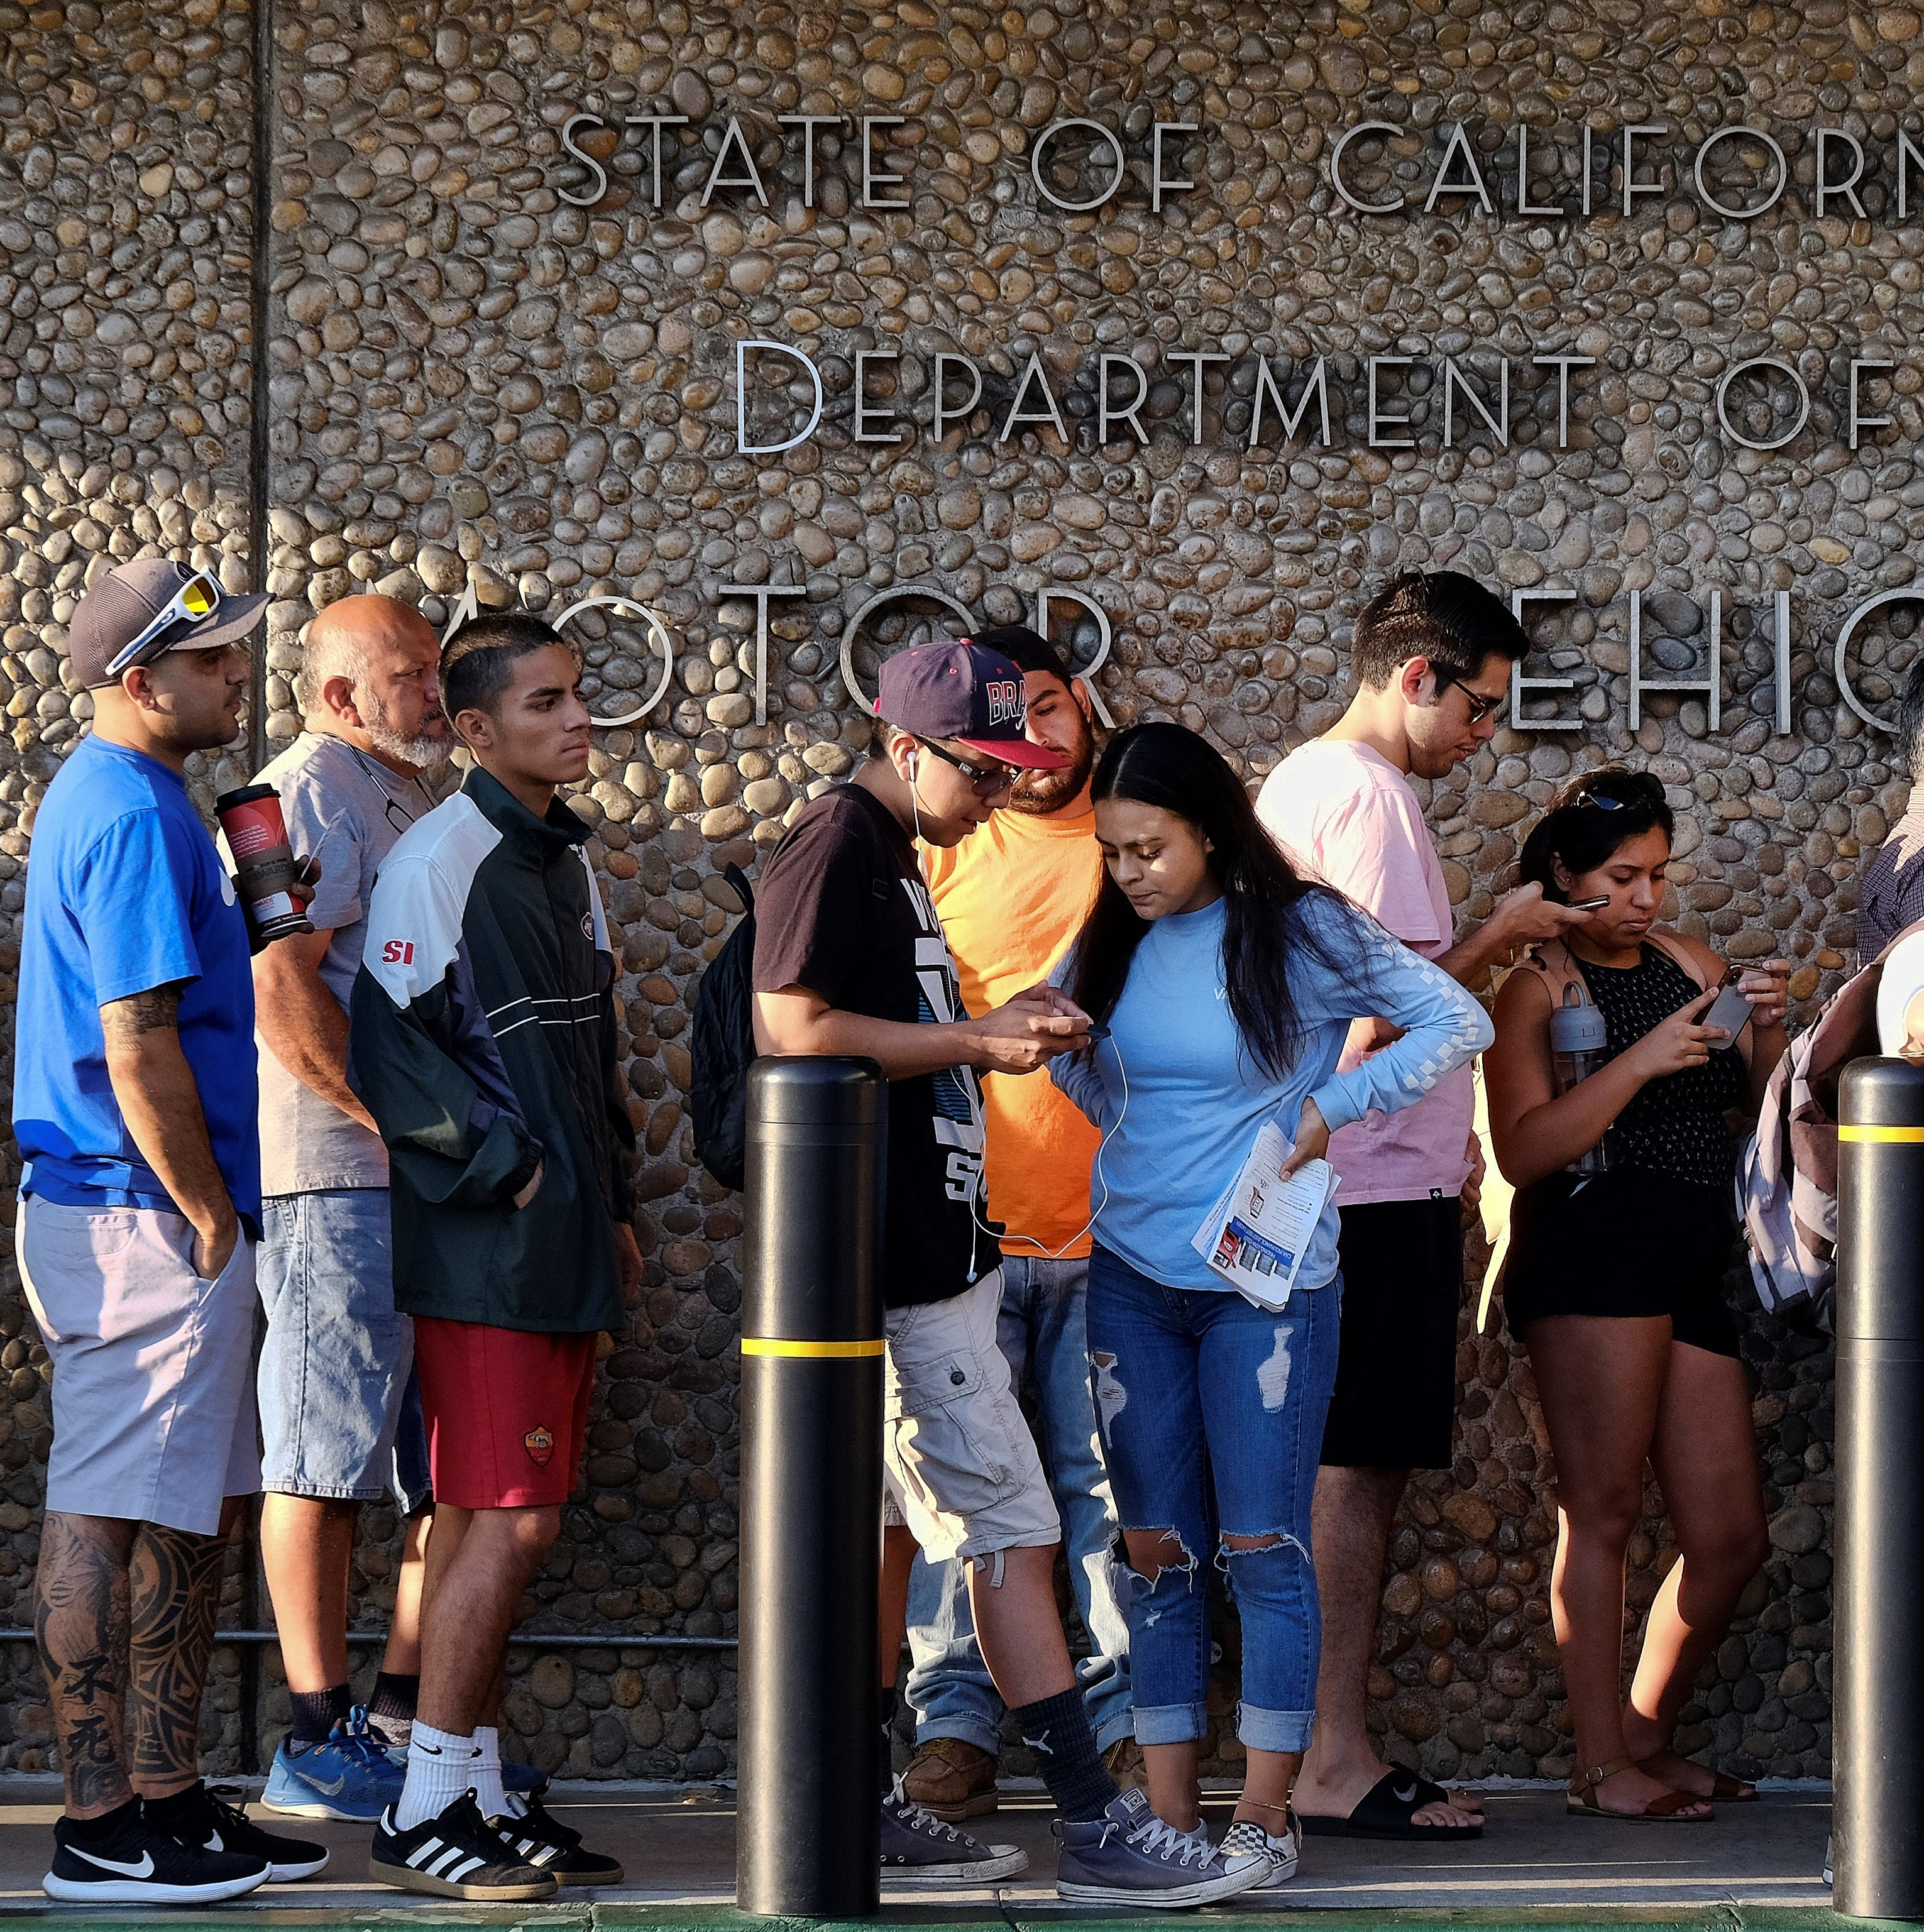 Audit finds poor planning led to California DMV problems